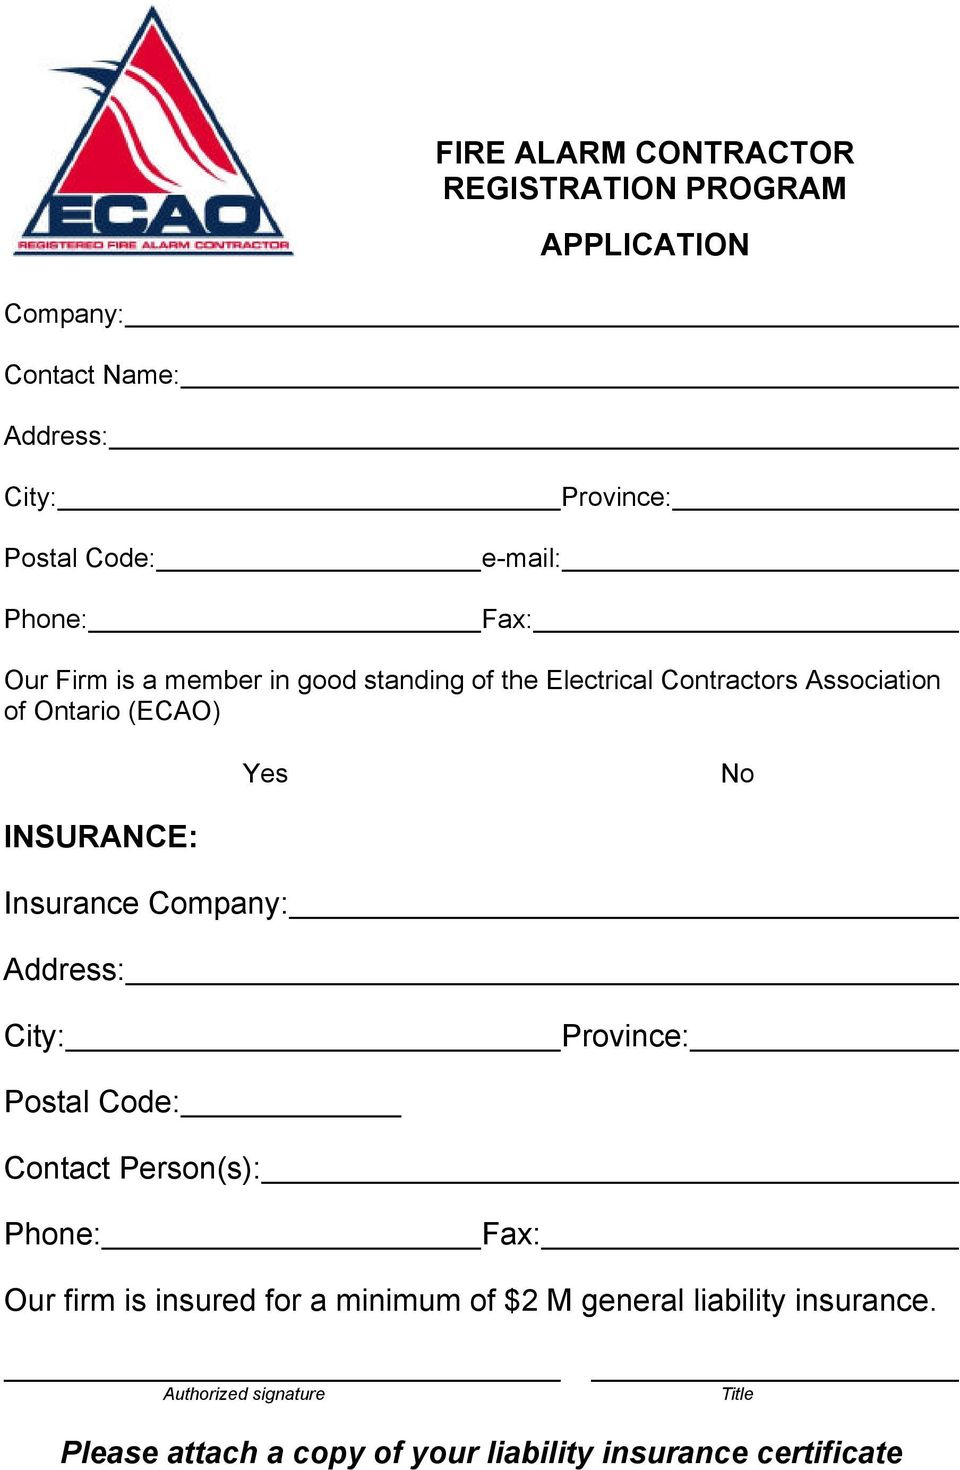 INSURANCE: Insurance Company: Address: City: Province: Postal Code: Contact Person(s): Fax: Our firm is insured for a